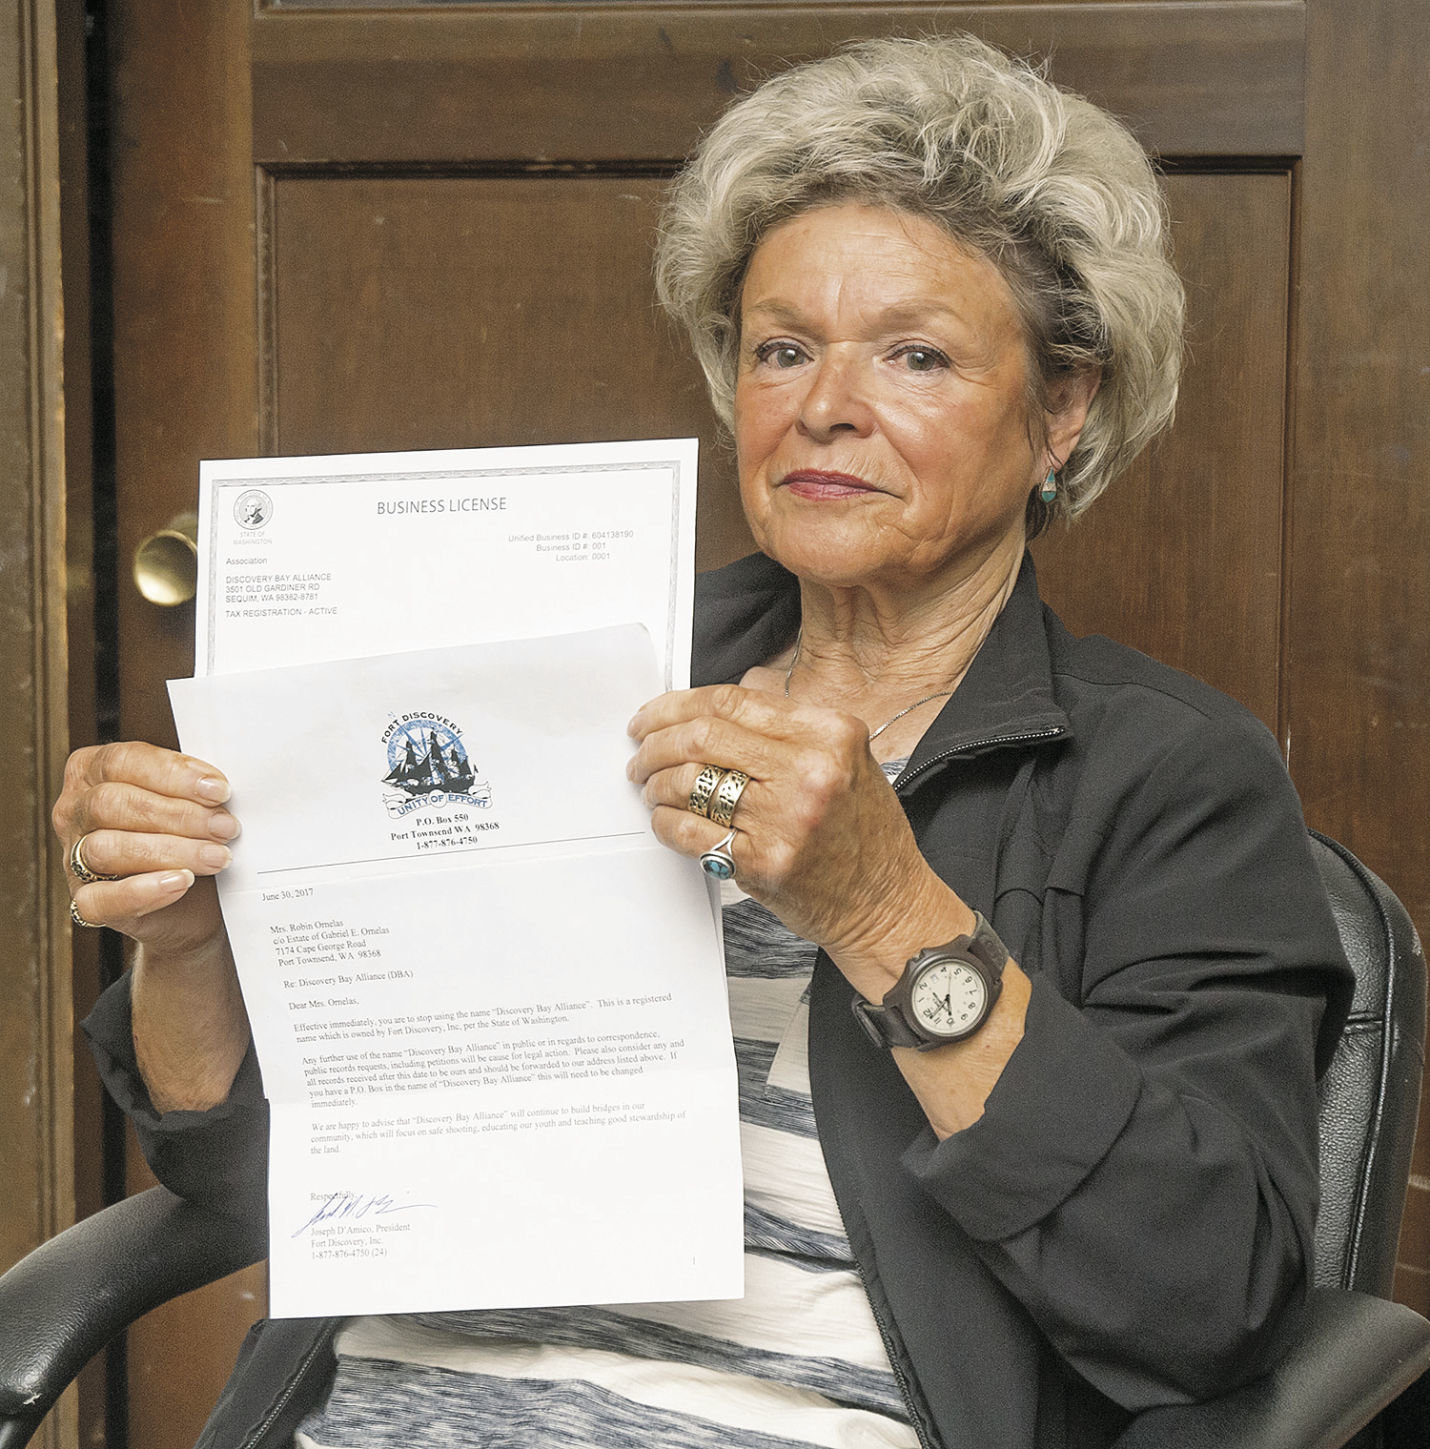 Robin Ornelas holds a copy of the letter that Joe D'Amico handed to her July 10 telling her to stop using the name Discovery Bay Alliance. That name has been used since 2005 by a group petitioning Jefferson County to take action on D'Amico's business for what the group deems is action by the business that runs contrary to a decision by a hearings examiner on land use. Photo by Chris Tucker